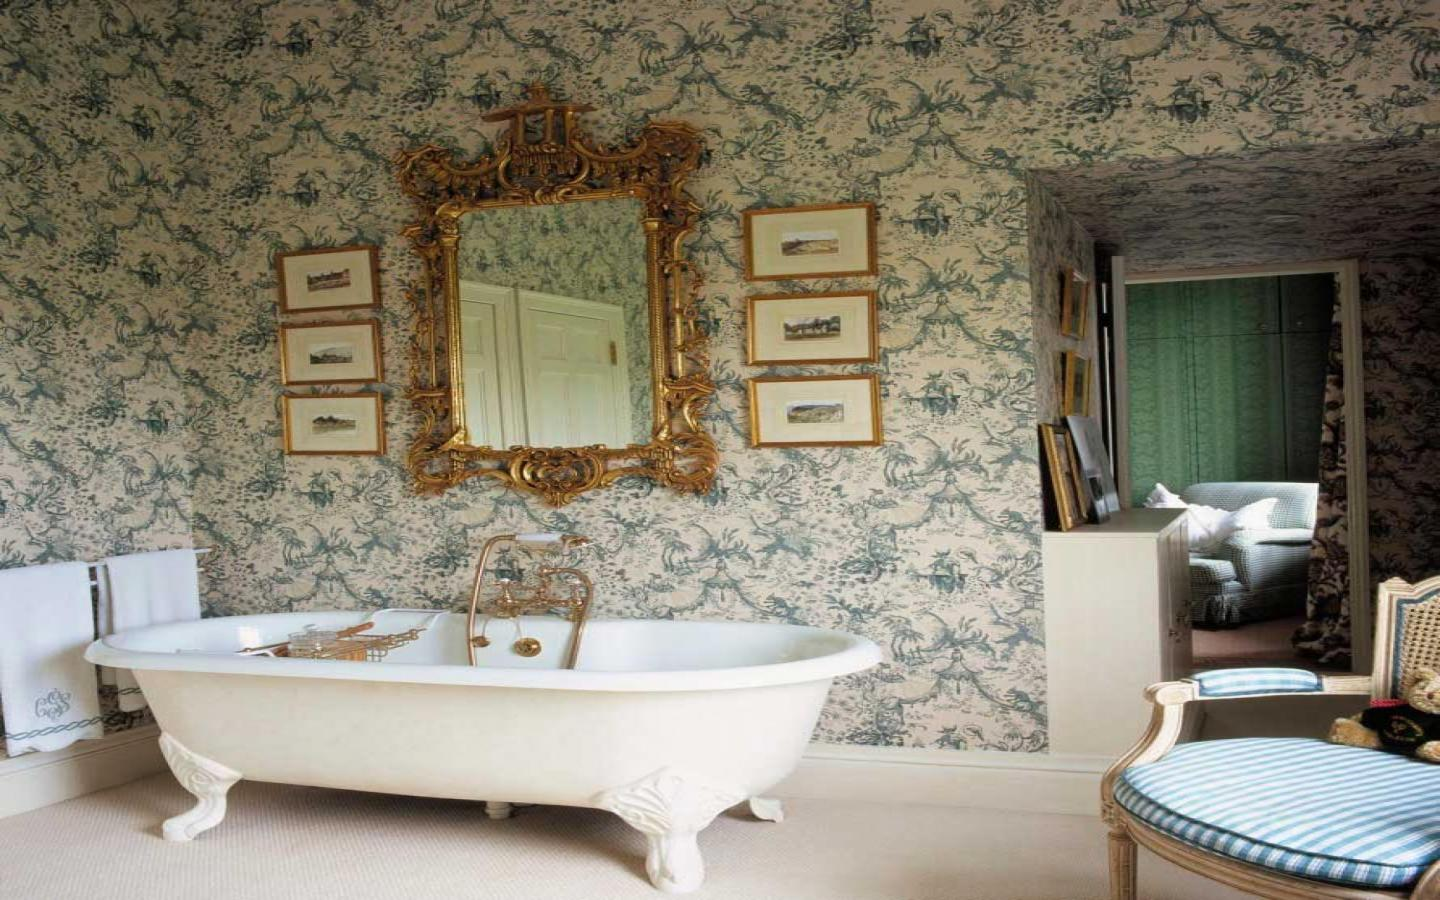 Edwardian bathroom wallpaper 22 design ideas for Bathroom ideas edwardian